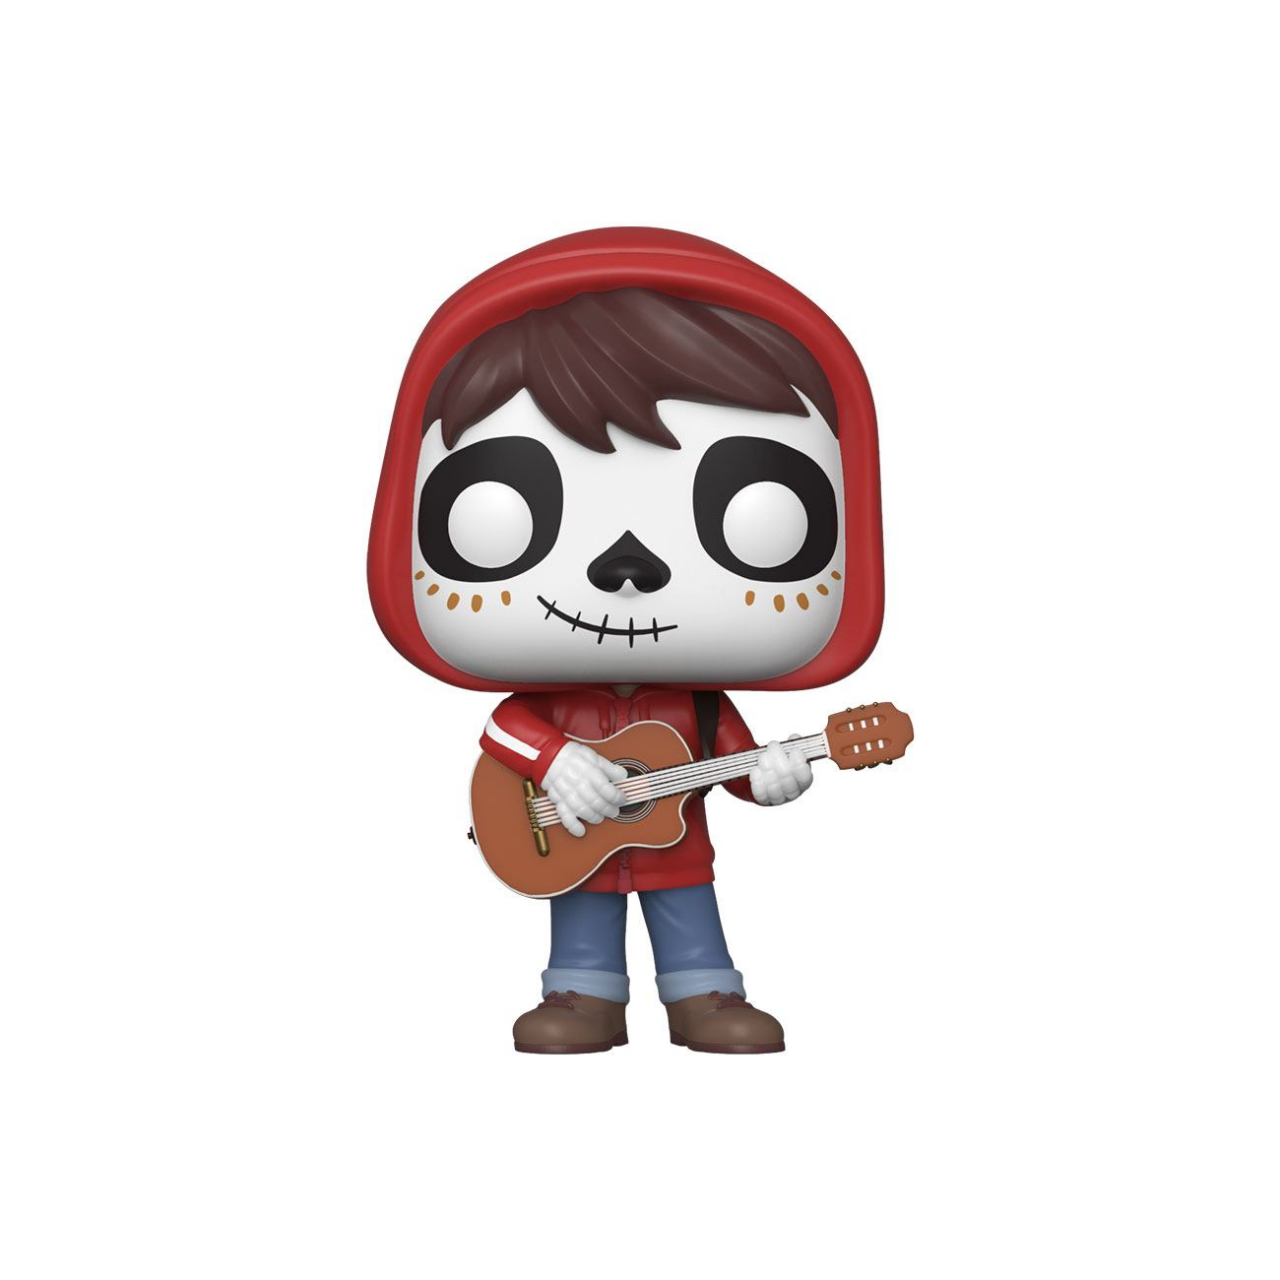 Coco POP! Movies Vinyl Figure Coco - Day of the Dead Makeup Convention Exclusive 9 cm